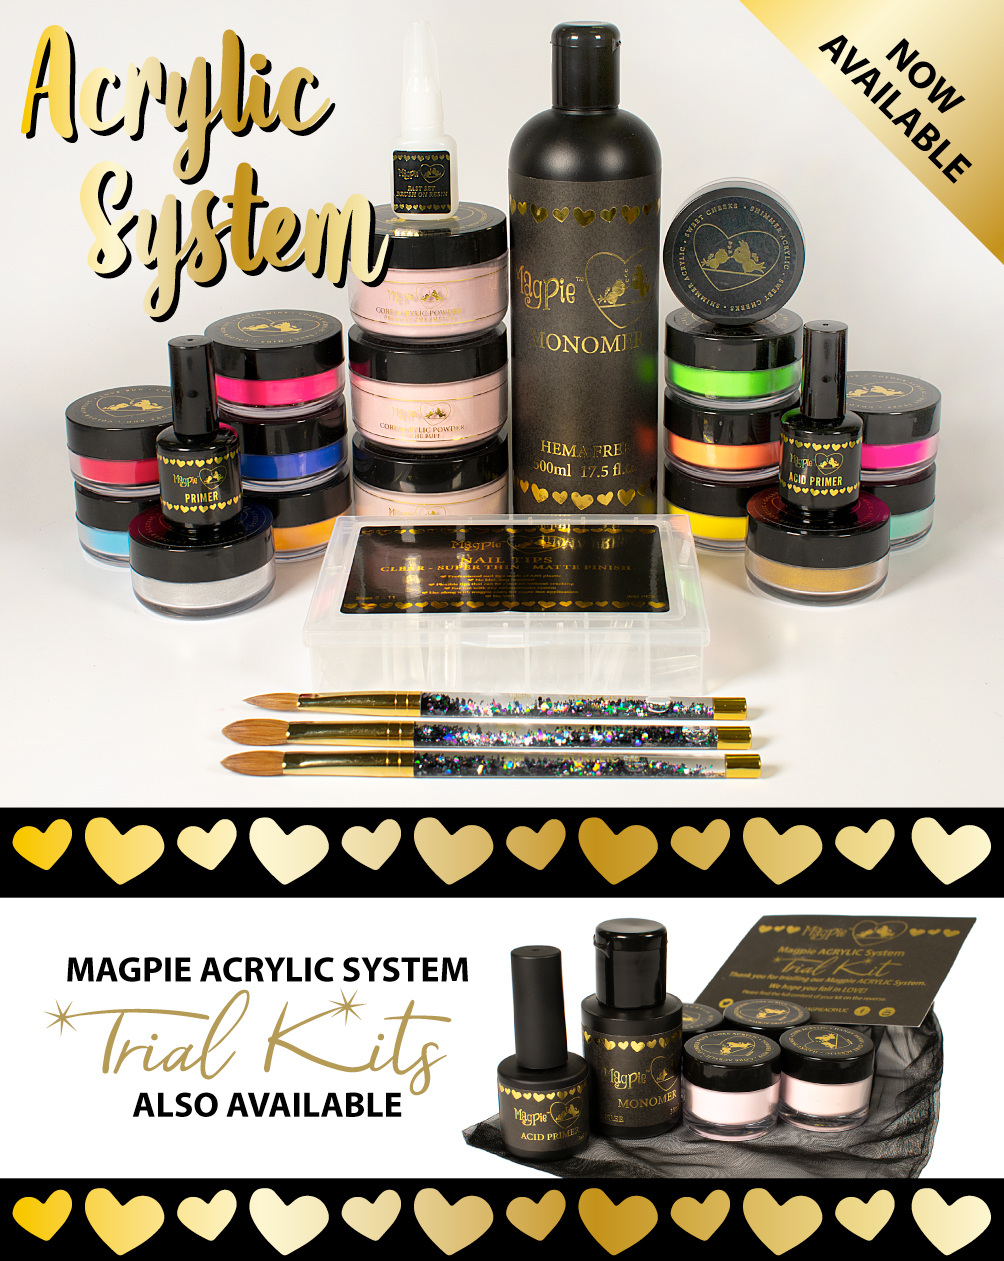 Acrylic system complete set, 20% off pre order online now